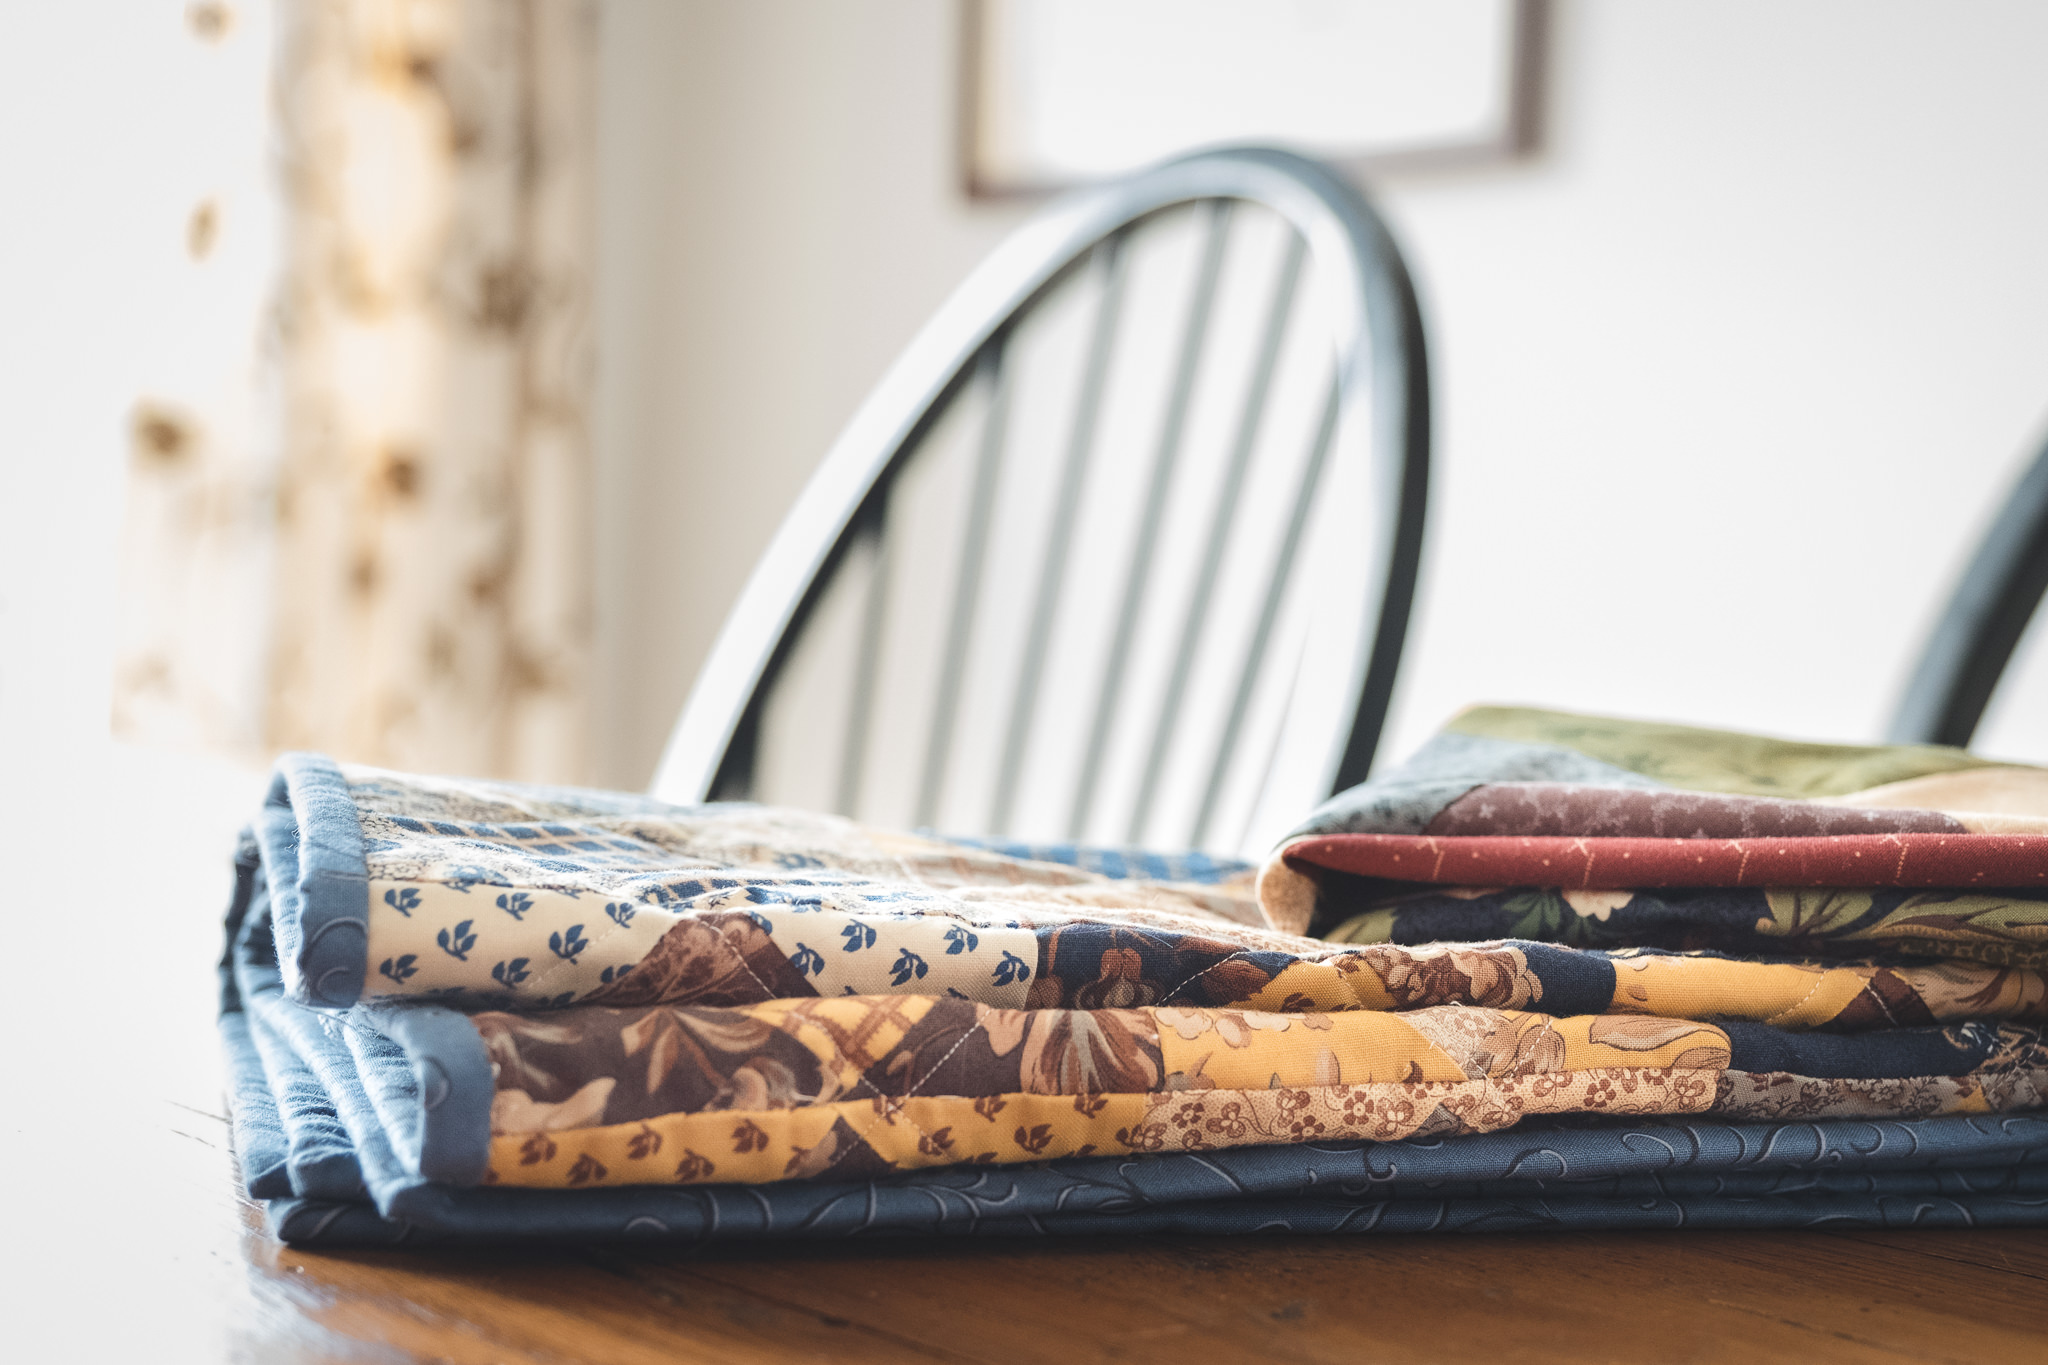 Quilting lessons learned from my first couple quilt projects.